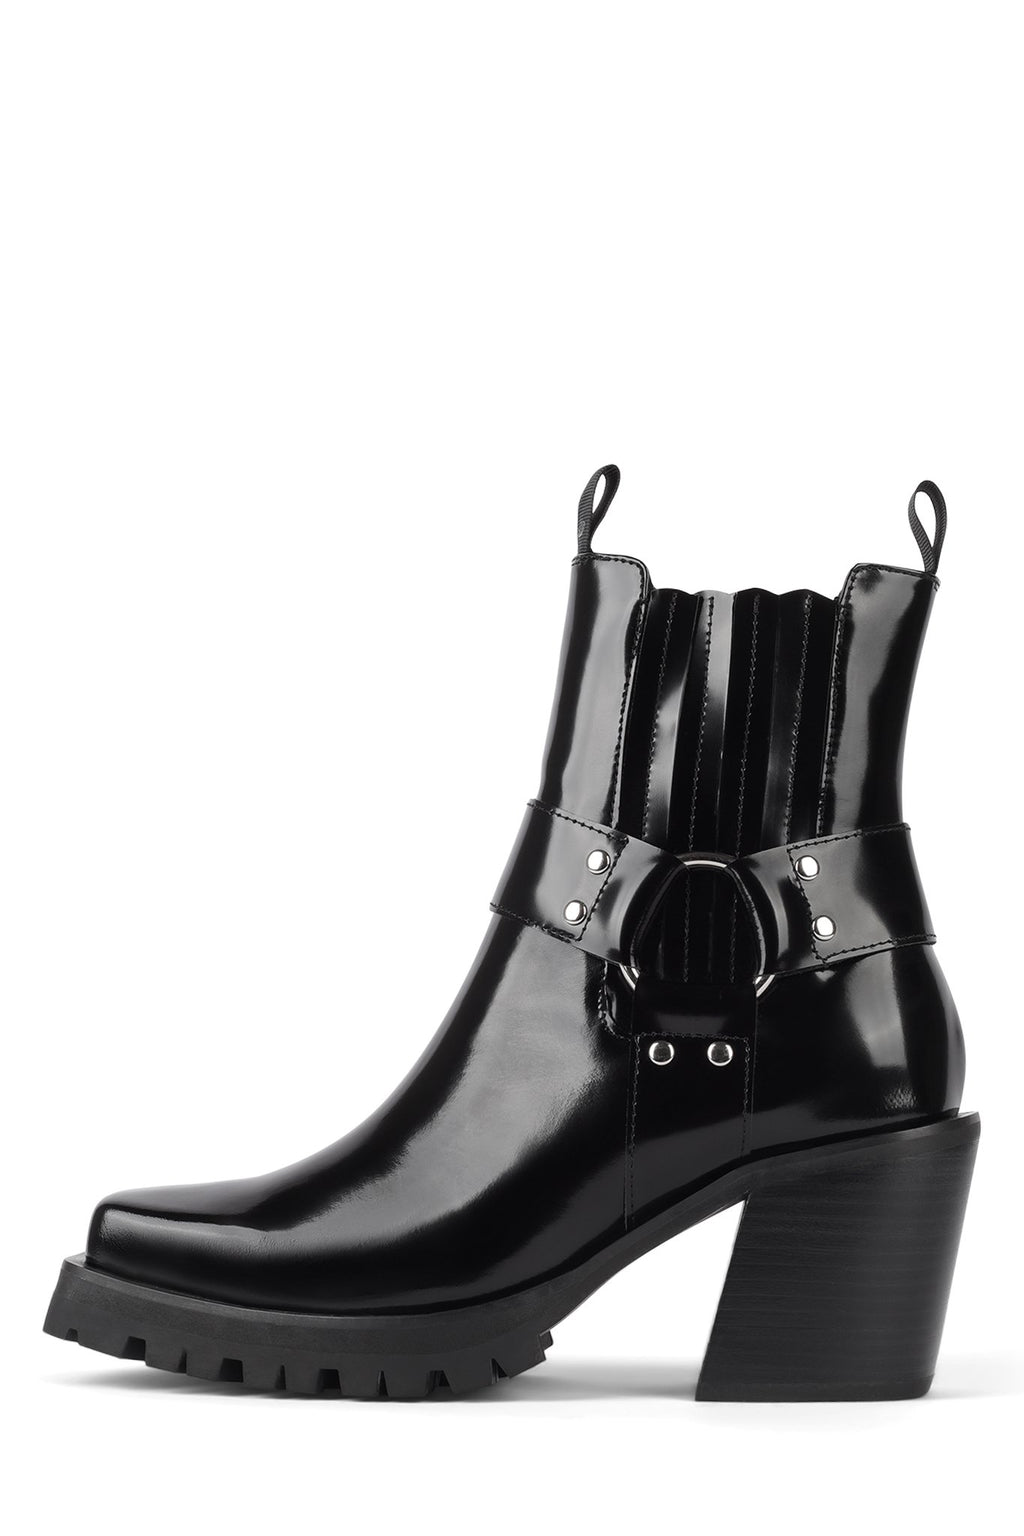 ELKINS-BK Heeled Boot Jeffrey Campbell Black Box 6